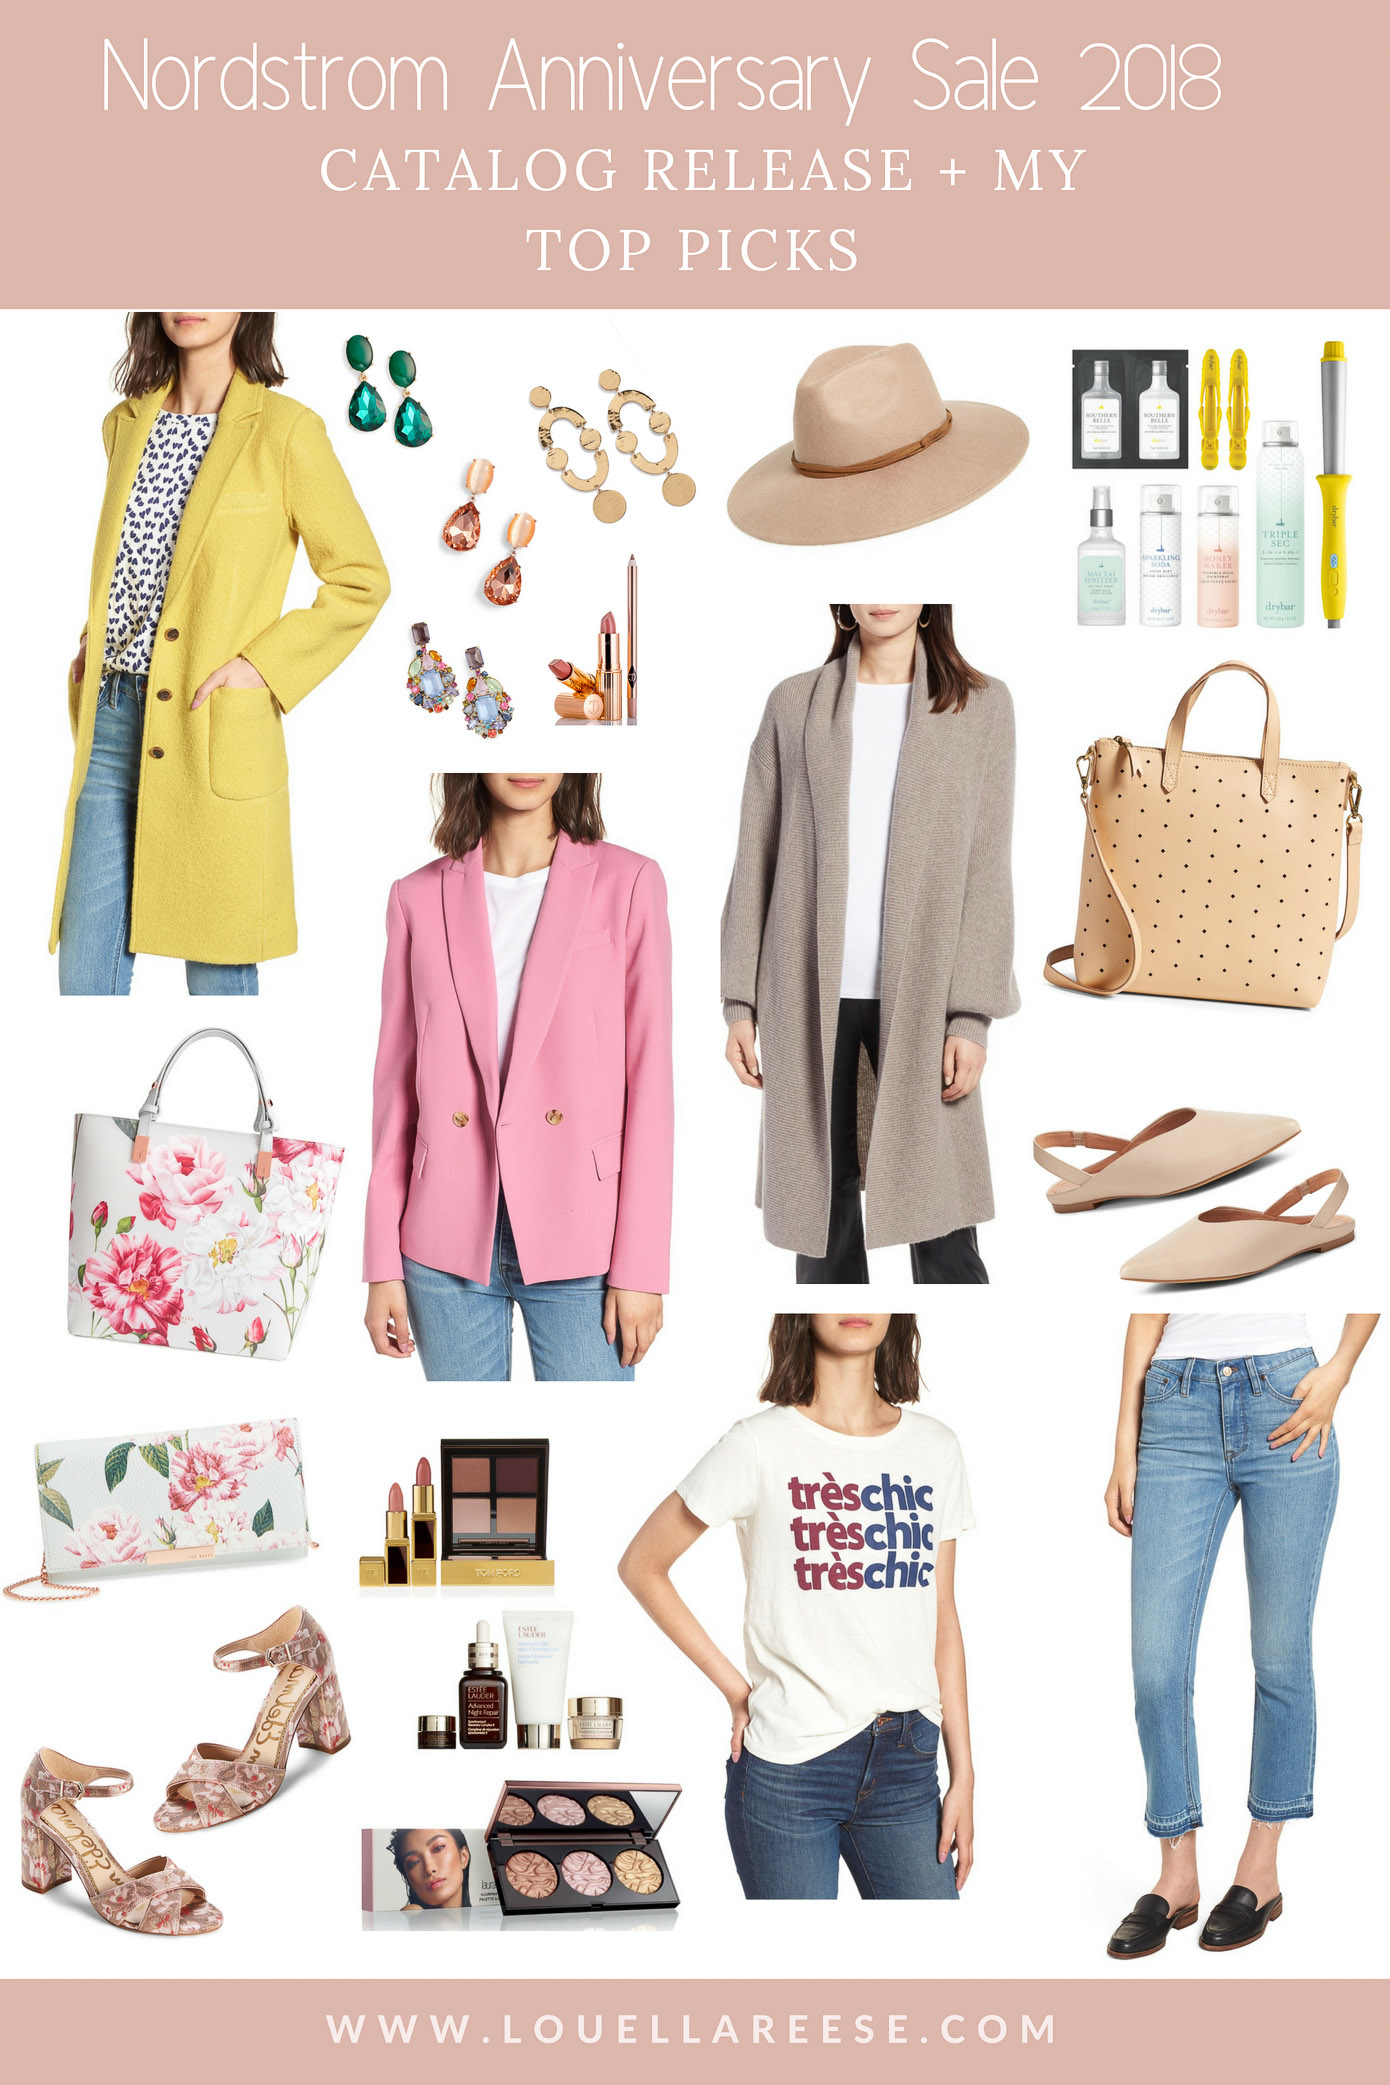 c2696e35b54 2018 Nordstrom Anniversary Sale FAQ + Top Picks | Louella Reese